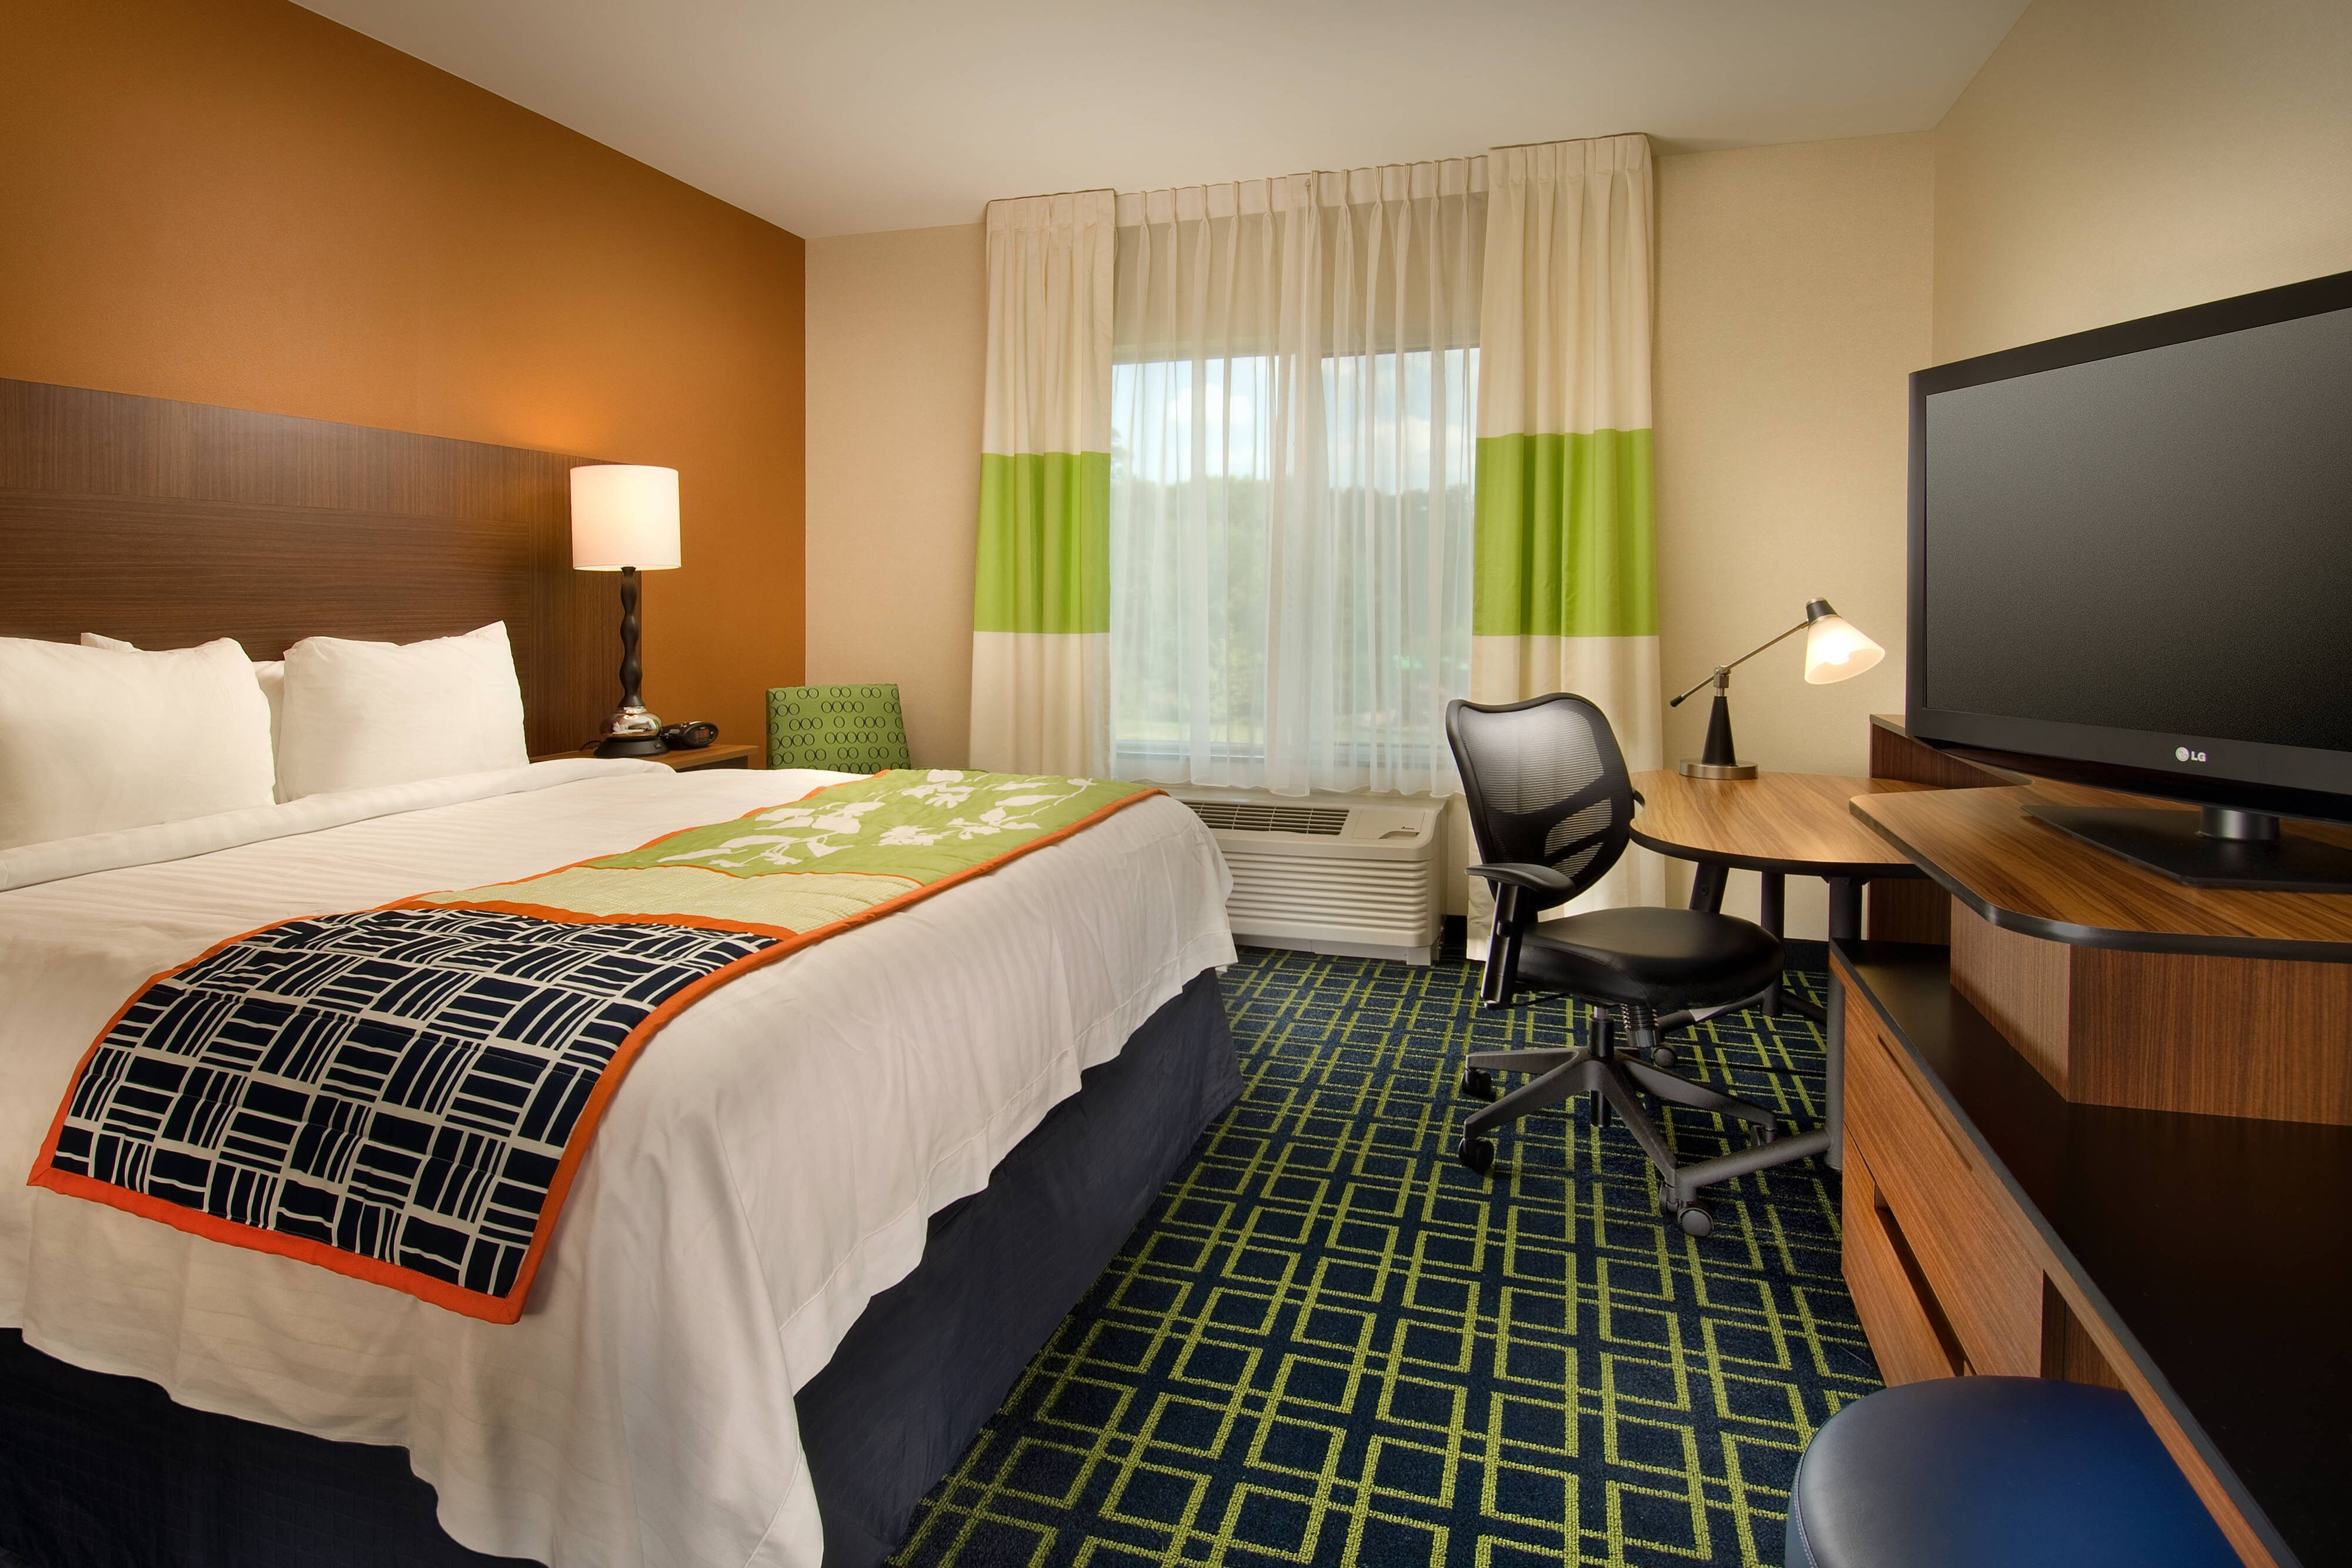 Baltimore MD Airport Hotel Guestroom